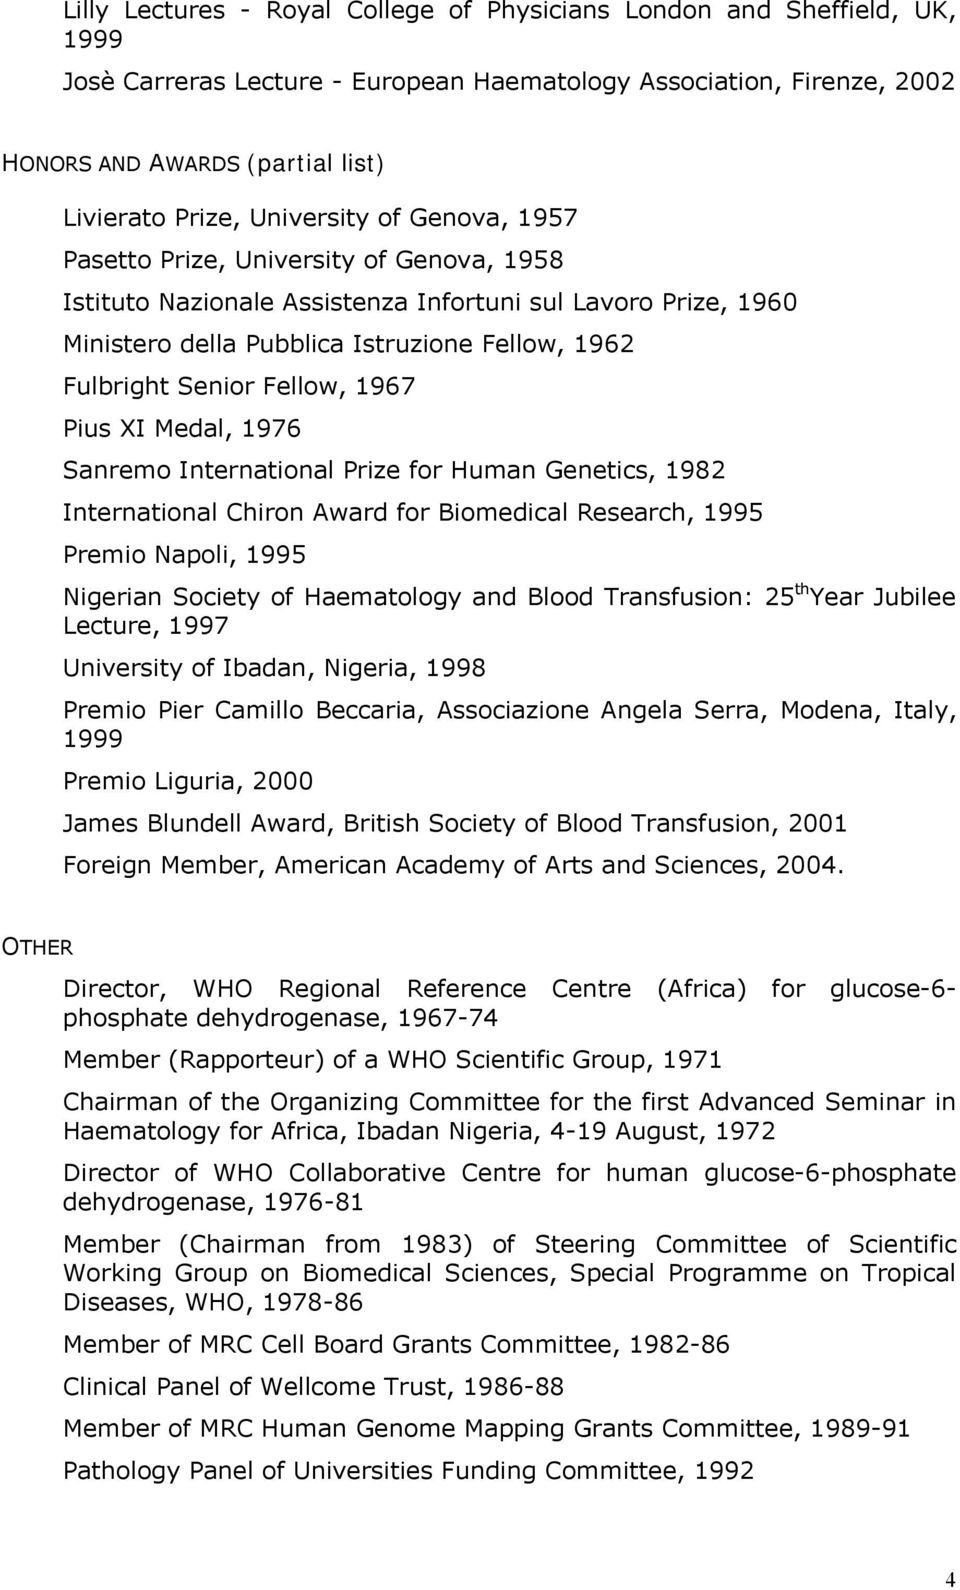 Fellow, 1967 Pius XI Medal, 1976 Sanremo International Prize for Human Genetics, 1982 International Chiron Award for Biomedical Research, 1995 Premio Napoli, 1995 Nigerian Society of Haematology and